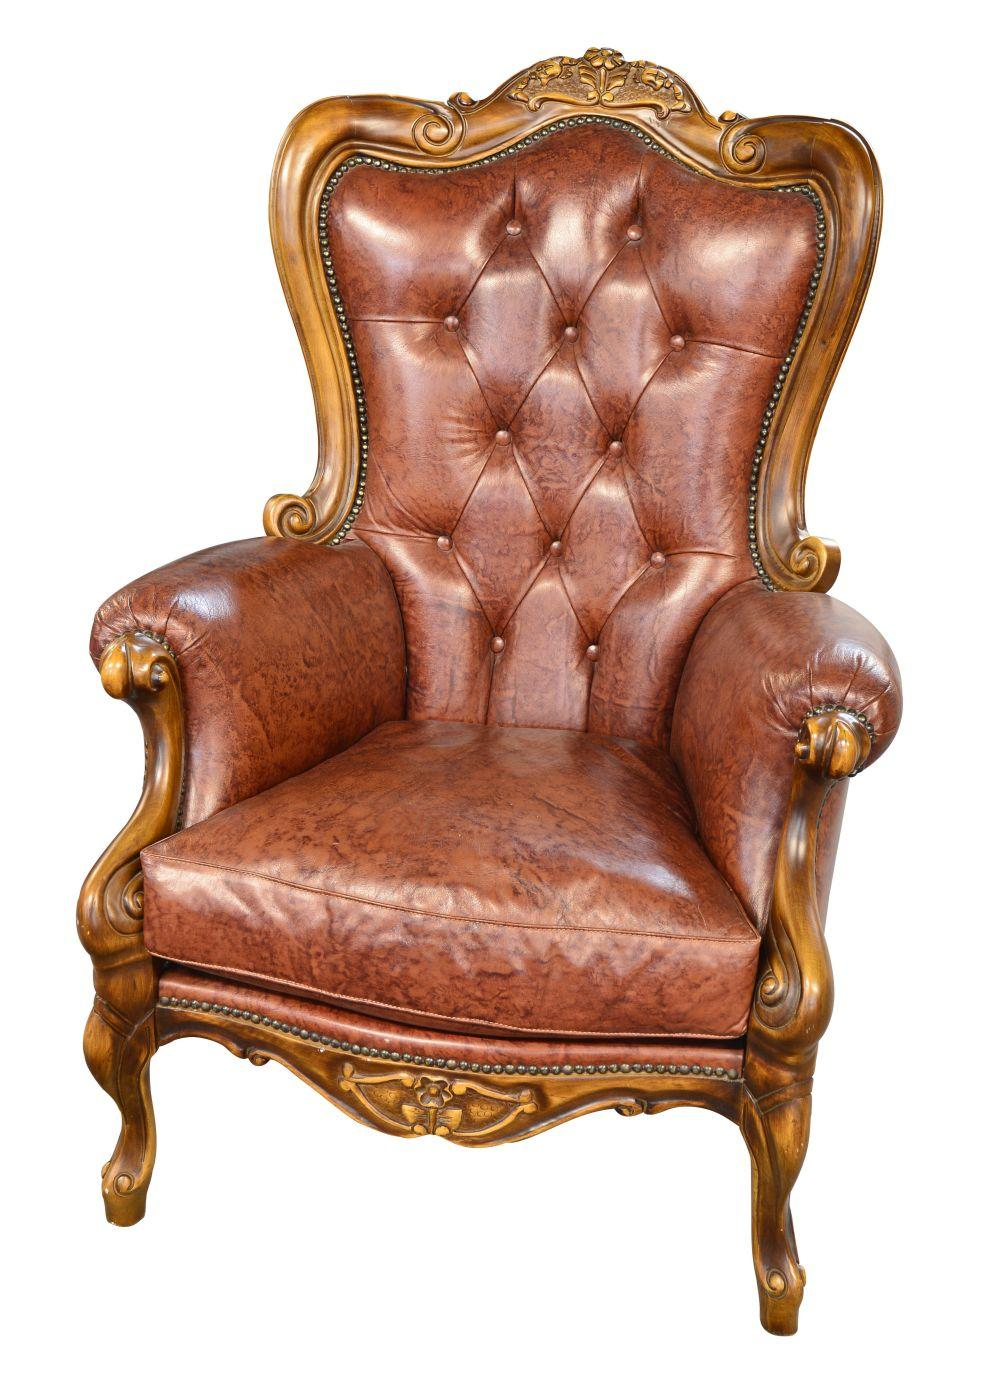 Louis XV-style leather armchair